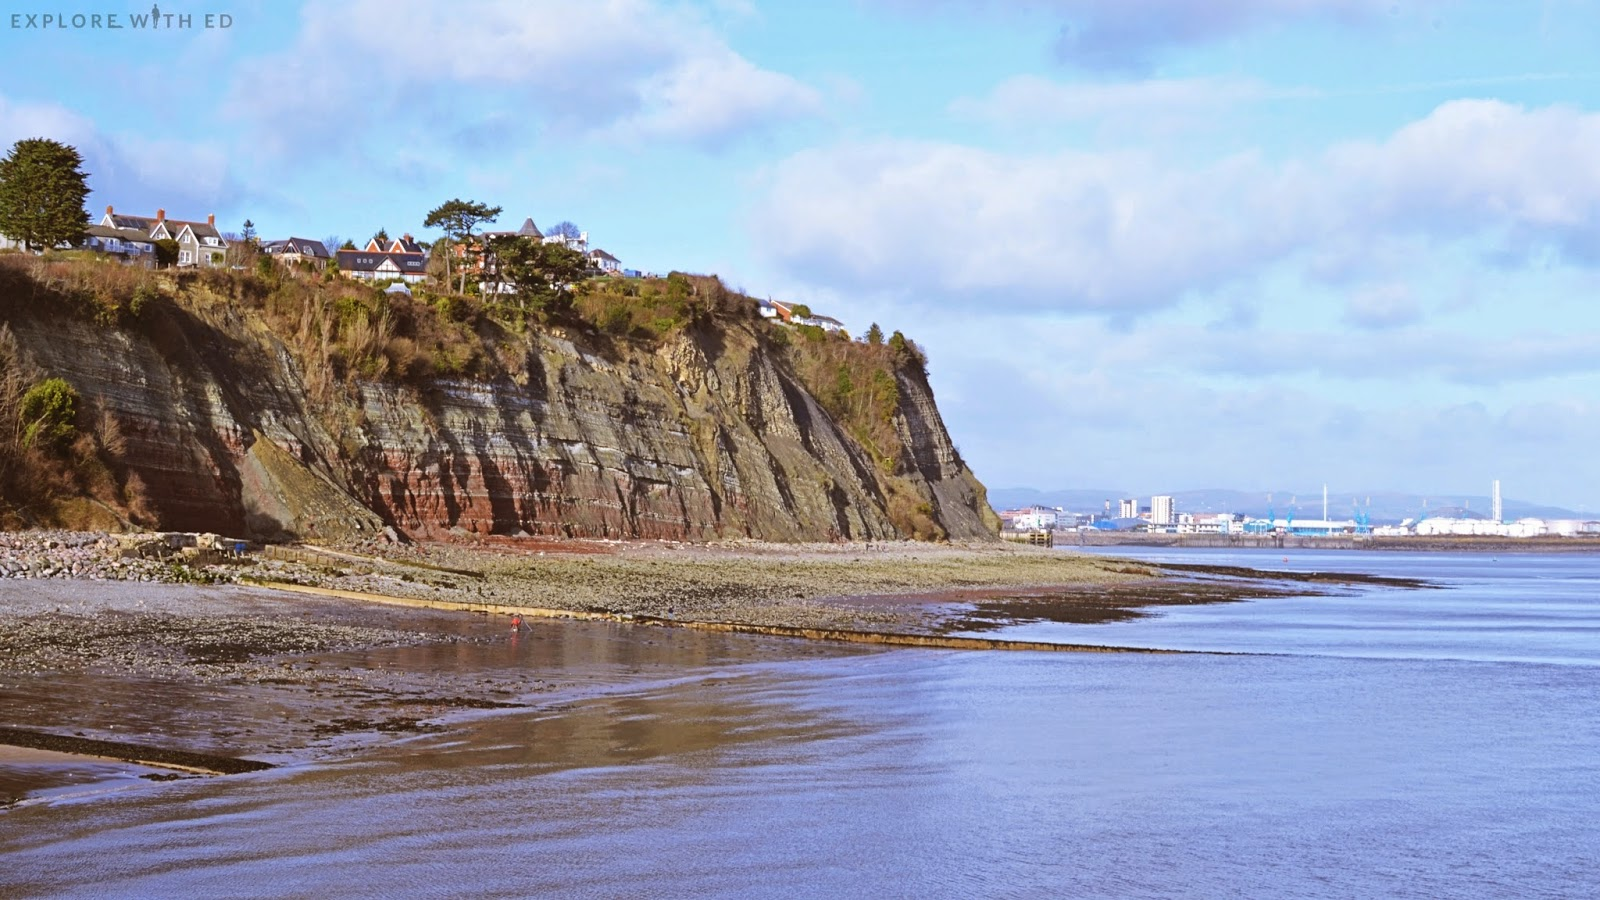 Rocky cliff and beach near Penarth